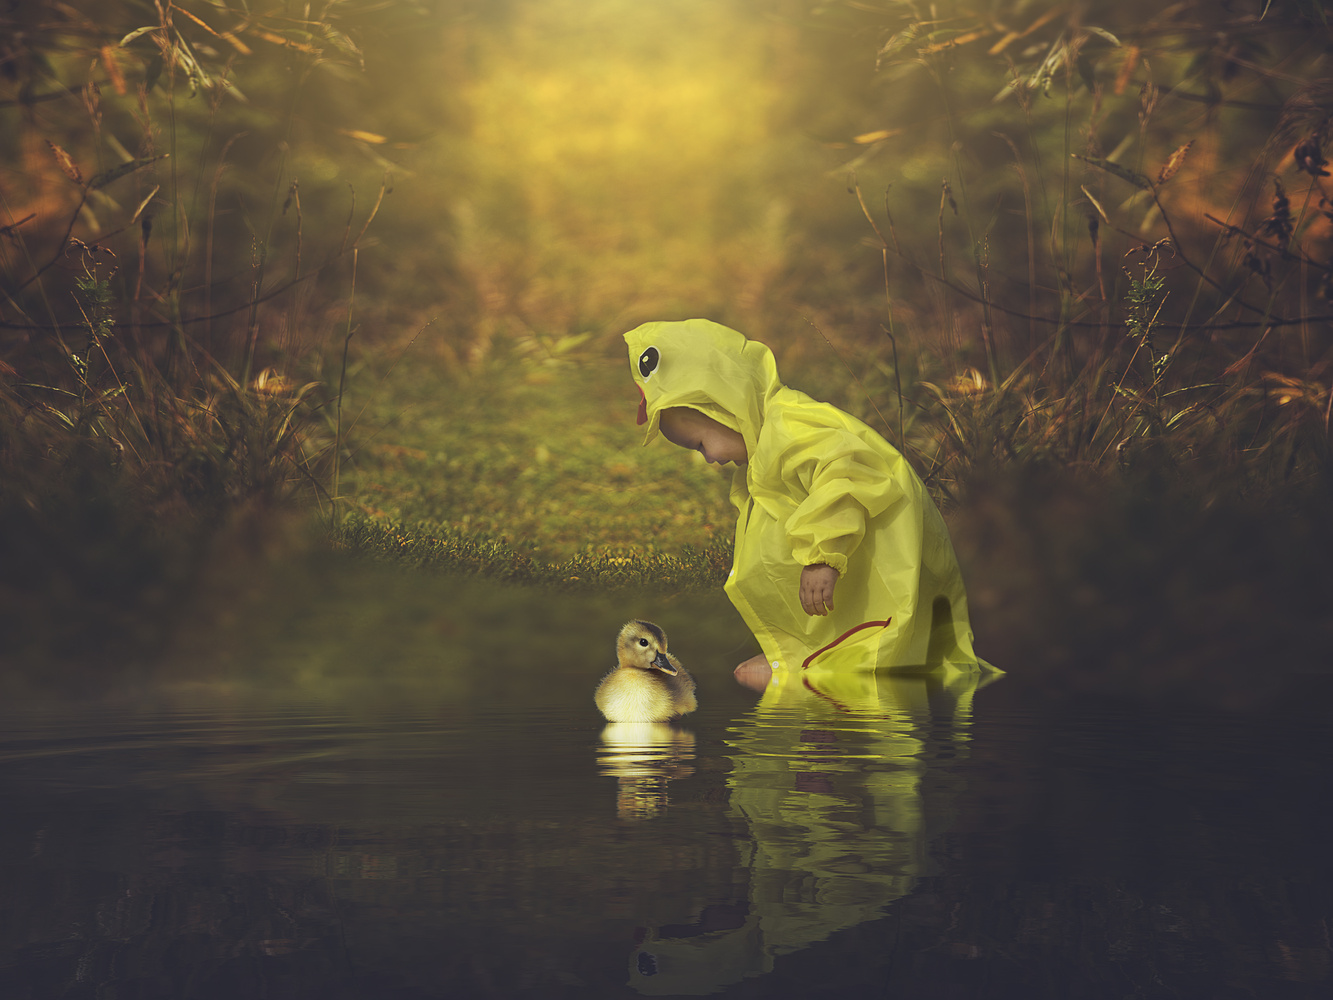 Puddle duck by Michelle Goodall